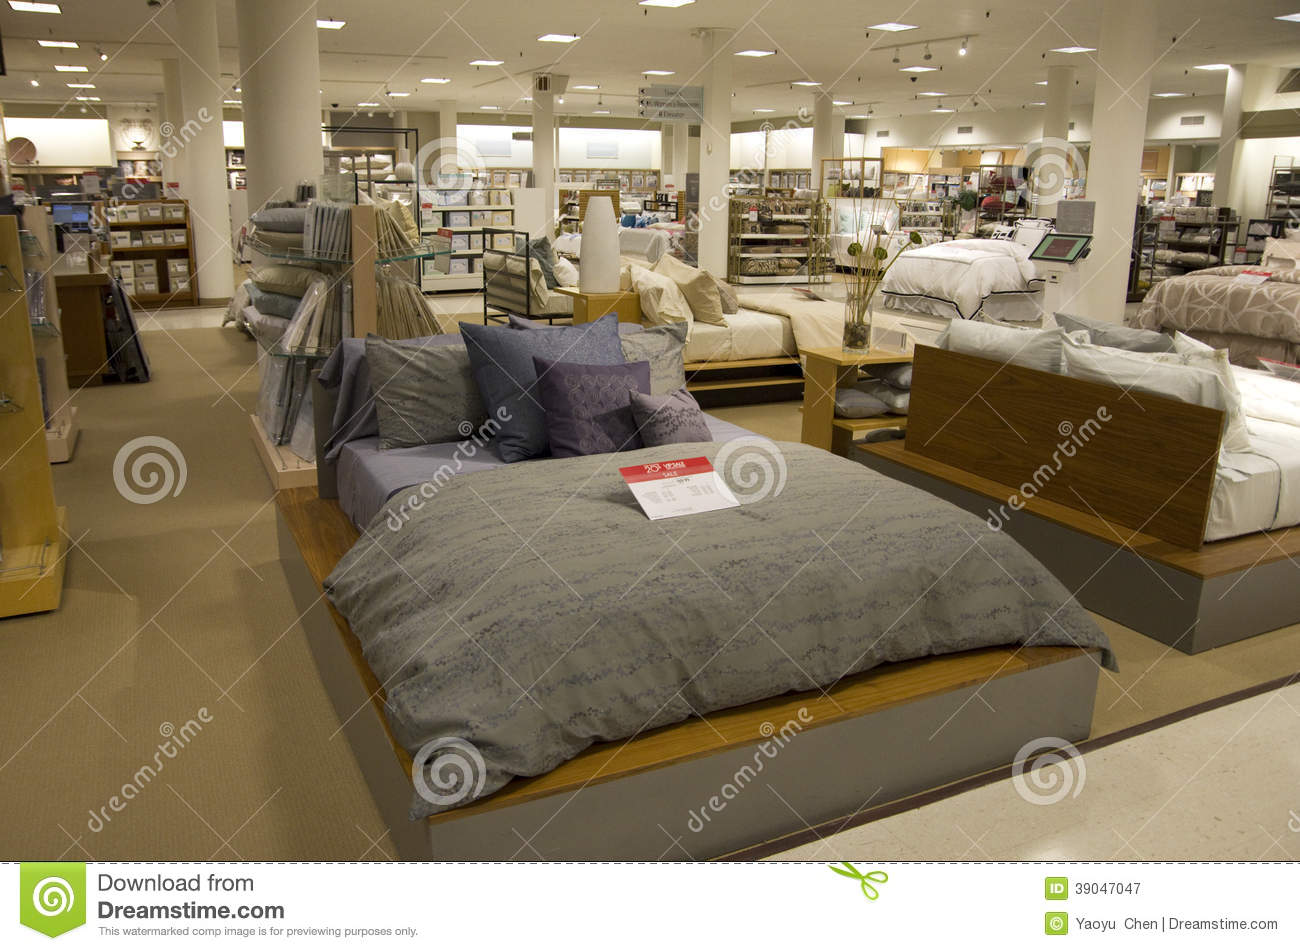 Bedding and home goods department store stock image for Home design furniture store